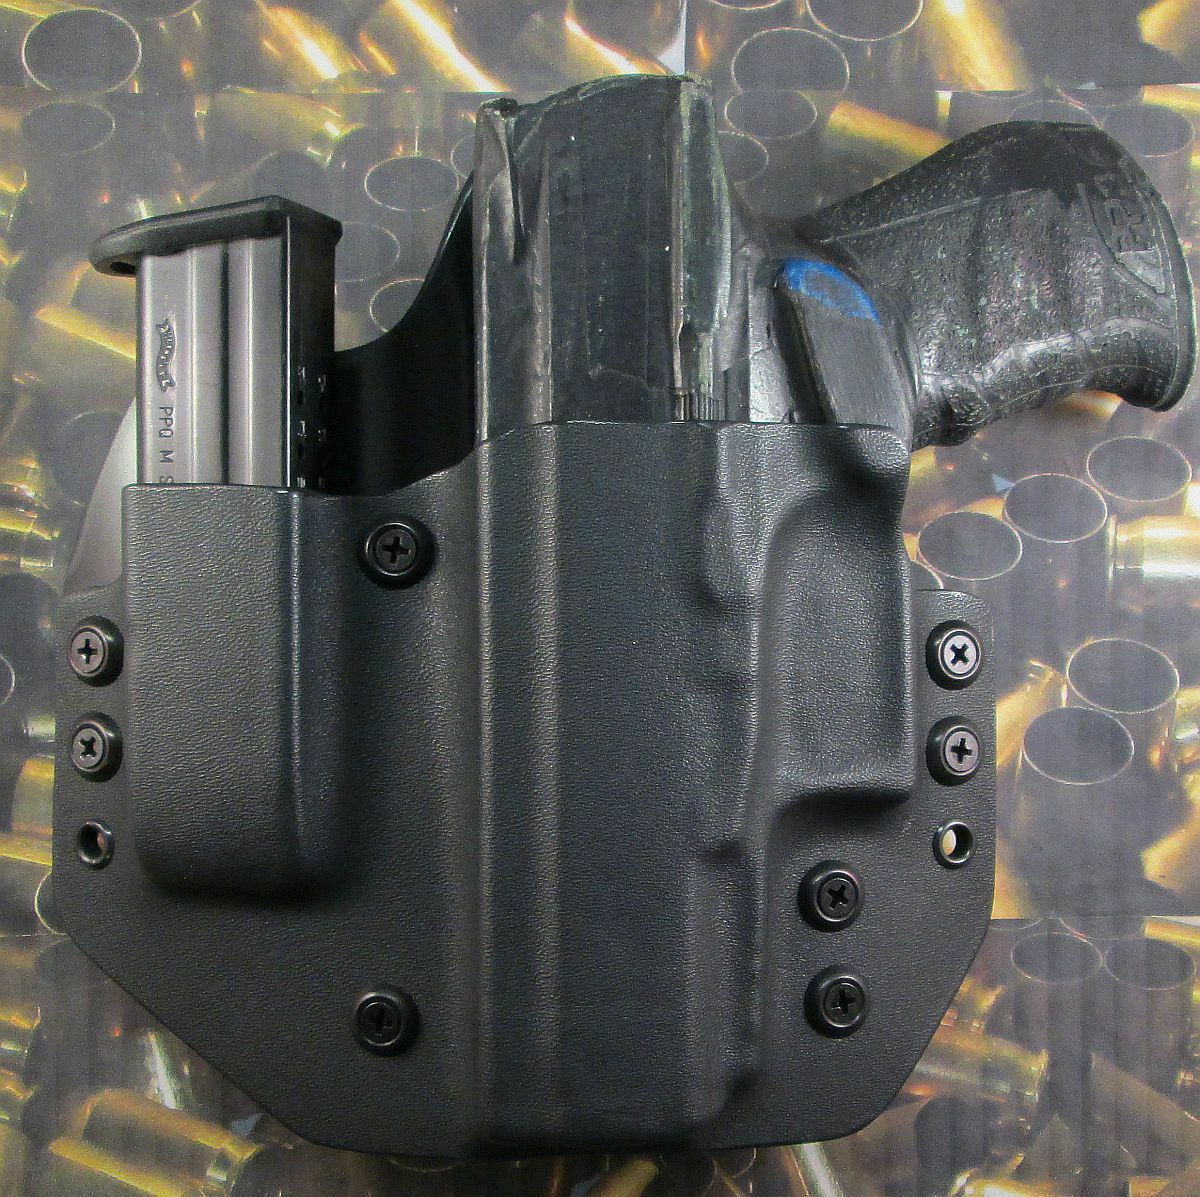 Hunt Ready Holsters  Walther PPQ M2 40 LH OWB Holster with Extra Mag Carrier